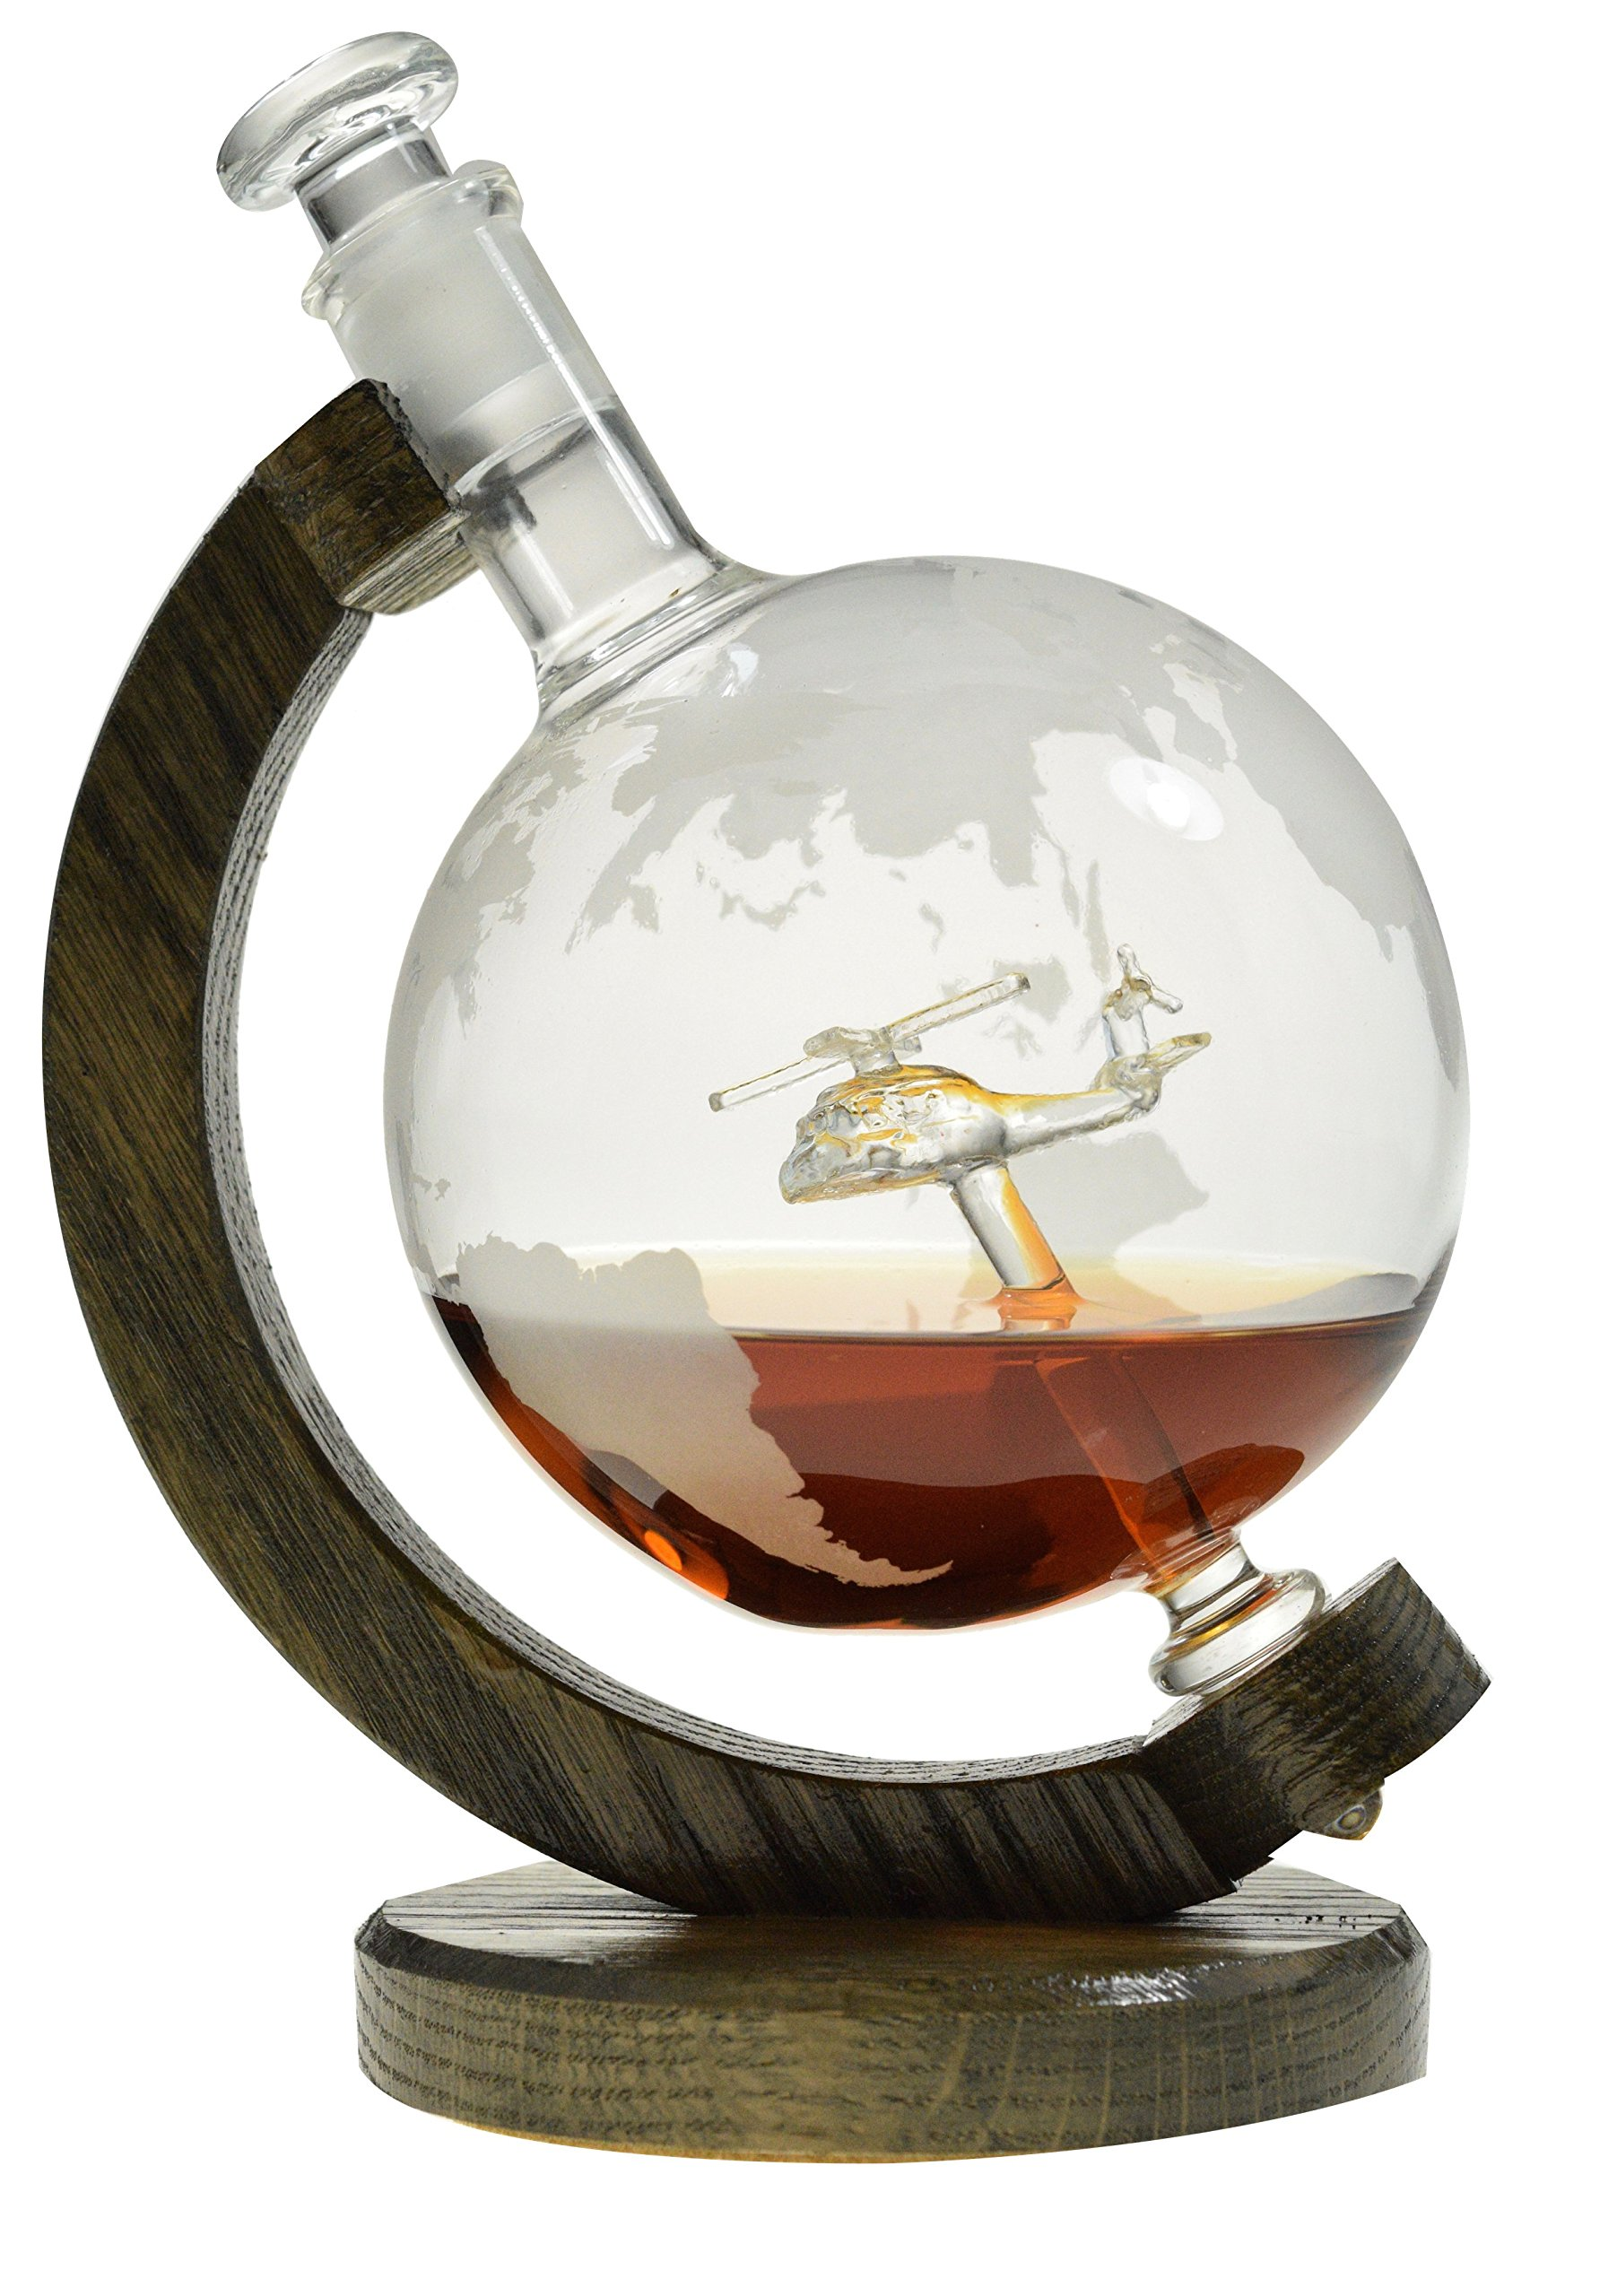 Helicopter within Etched Globe Liquor Decanter - Scotch Whiskey Decanter - 1000ml Glass Decanter for Alcohol - Vodka, Bourbon, Rum, Wine, Tequila - (Helicopter by Prestige Decanters)